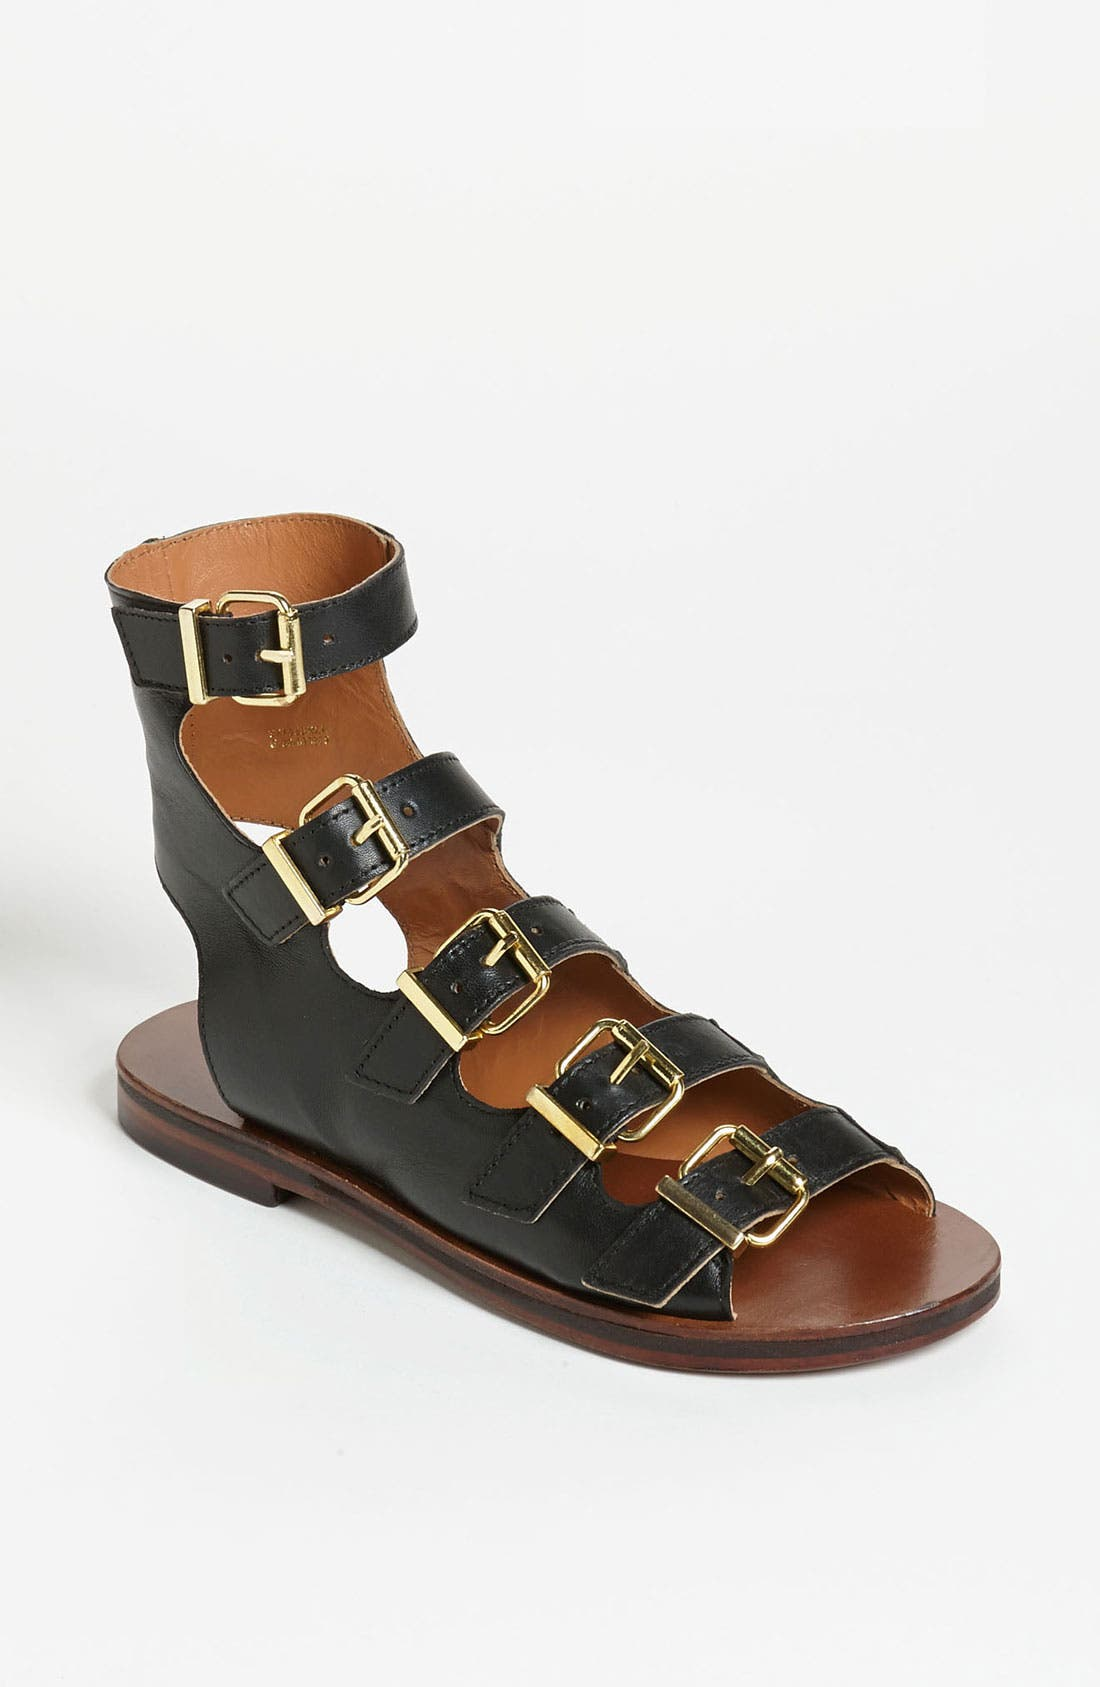 Main Image - Topshop 'Fable' Multi Buckle Sandal